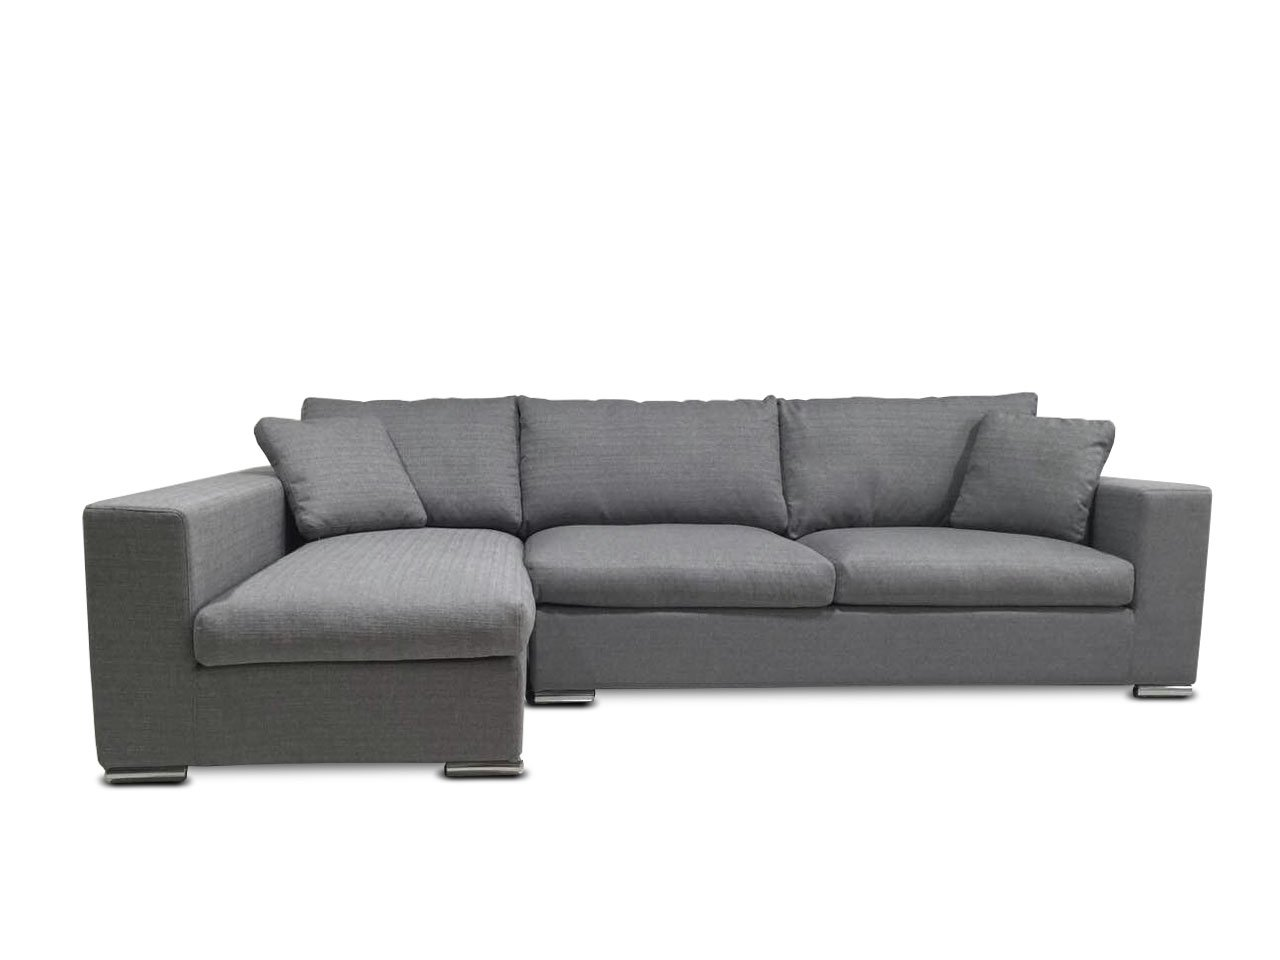 KMP Furniture Coleen Sectional Sofa & Left Chaise Lounge - Gray